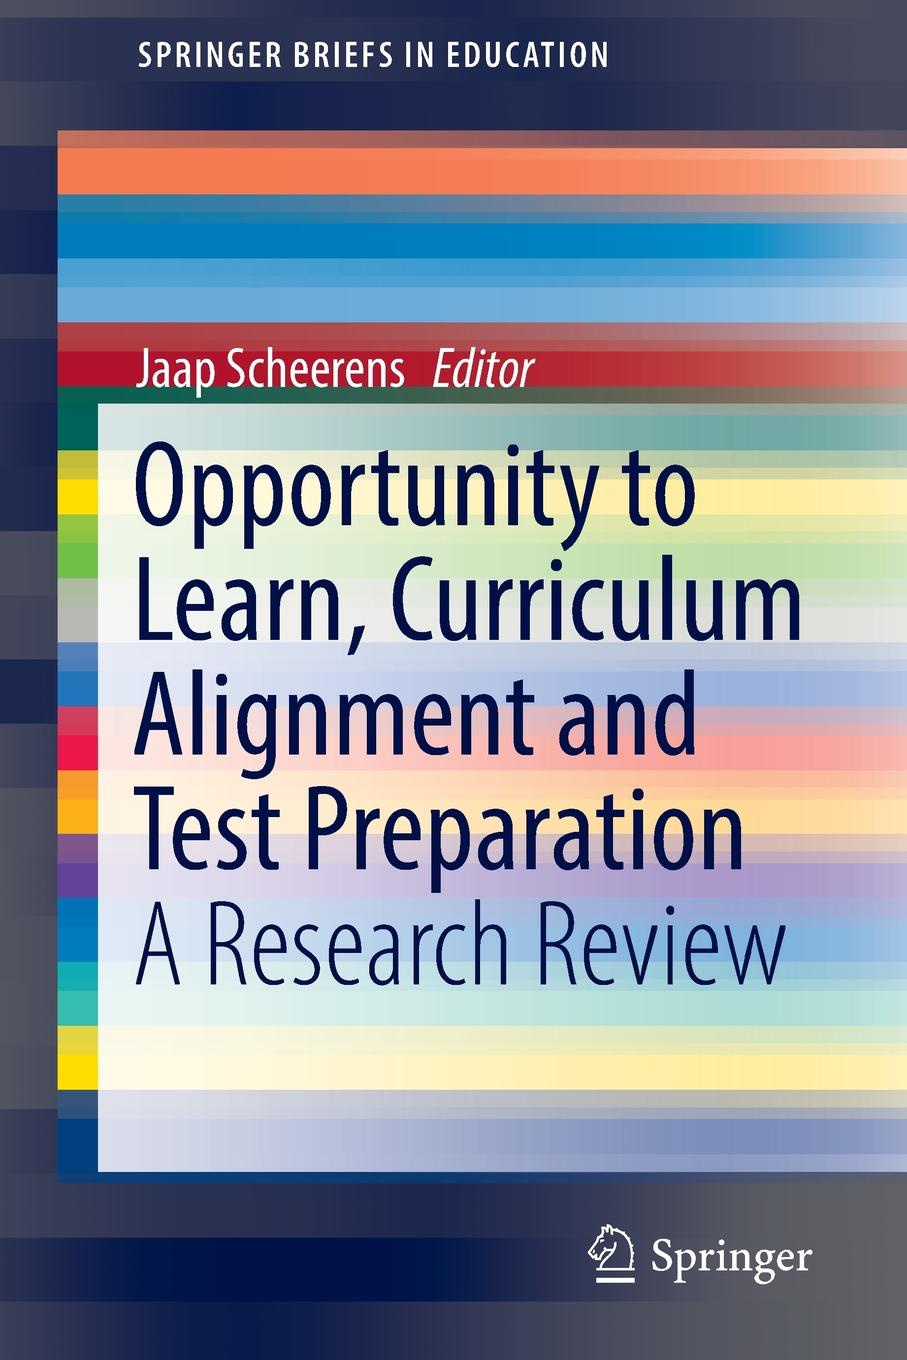 Opportunity to Learn, Curriculum Alignment and Test Preparation. A Research Review preparation crop tee